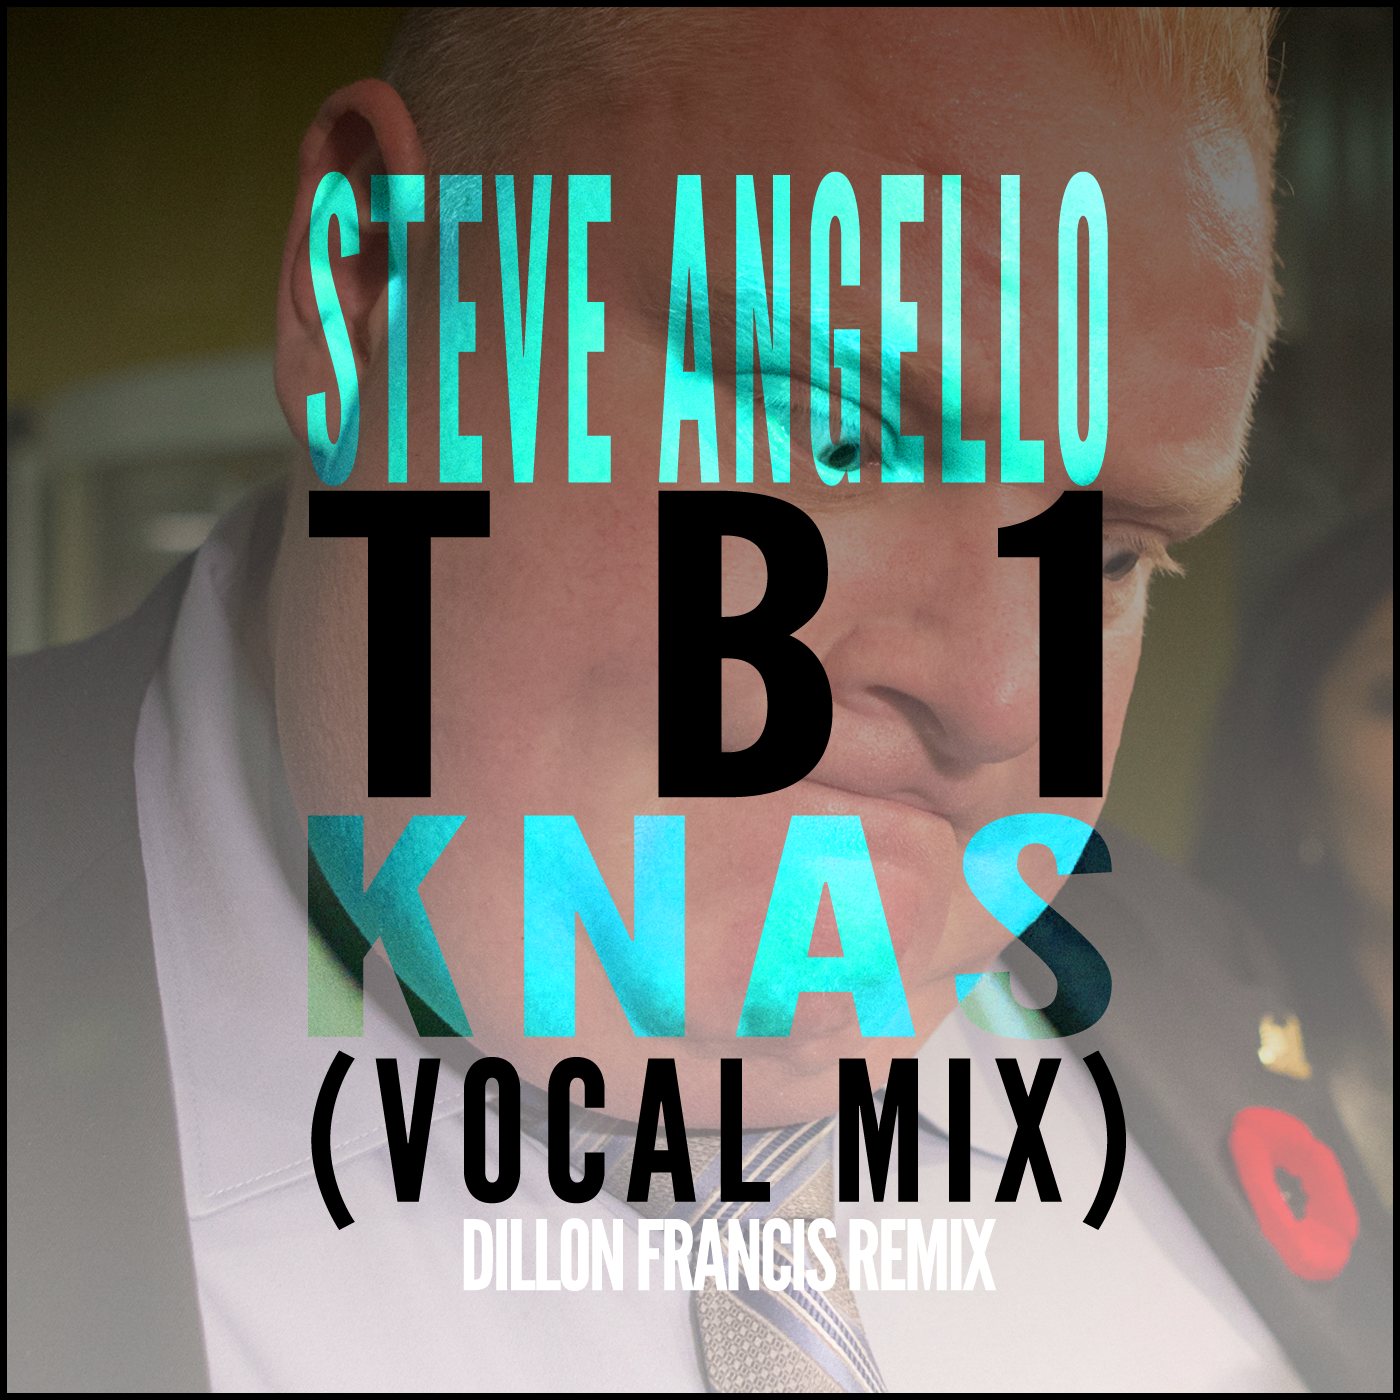 Rob Ford Song - TB1 Vocal Mix - KNAS (Dillon Francis Remix) - Steve Angello